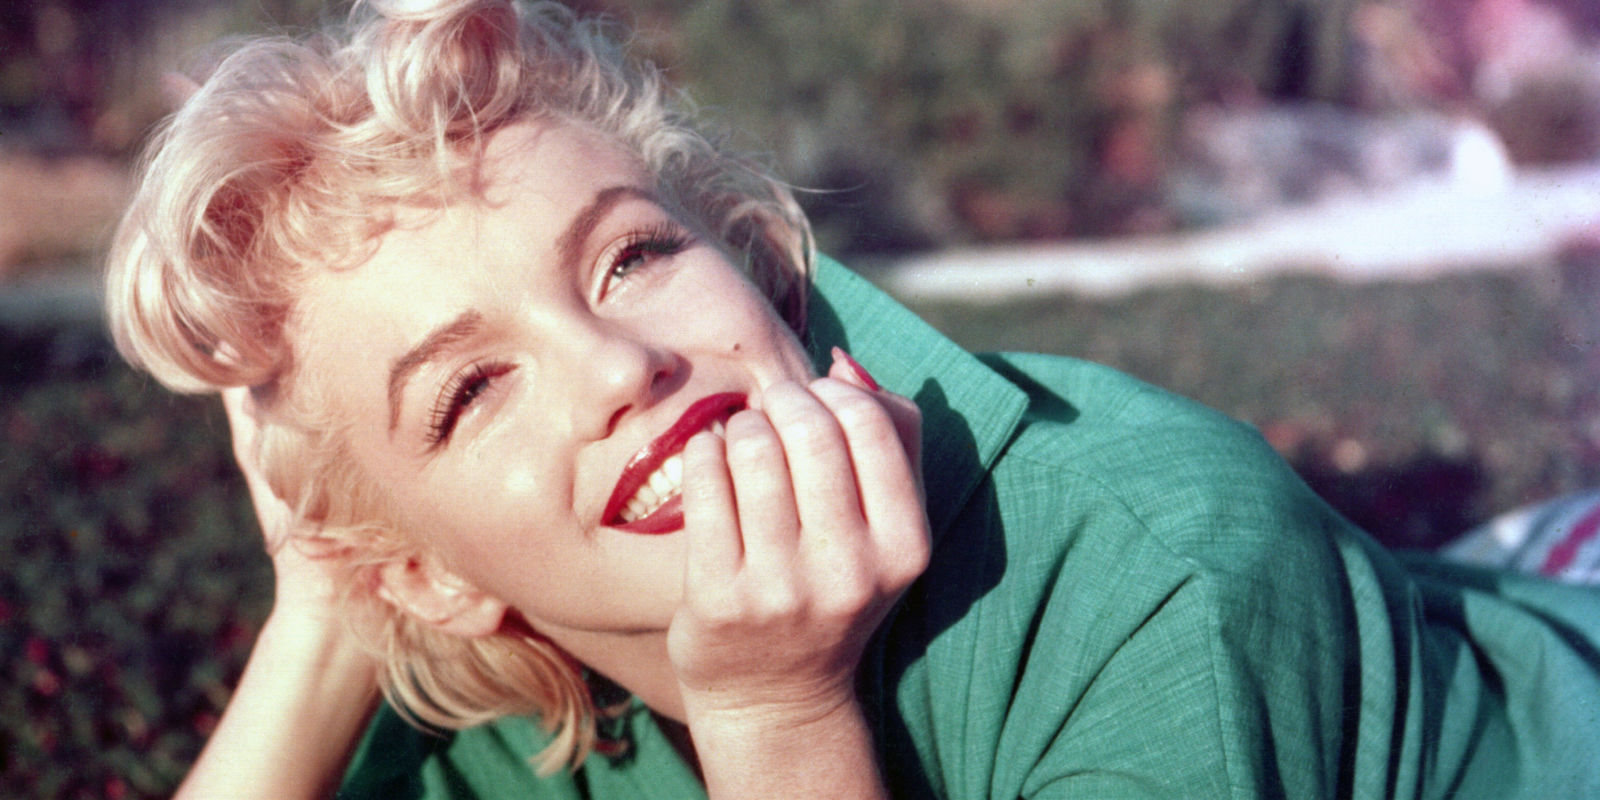 marilyn monroe, beauty, blond, queen, mar, juju, history, usa, US, america, good, happy, baby boomers